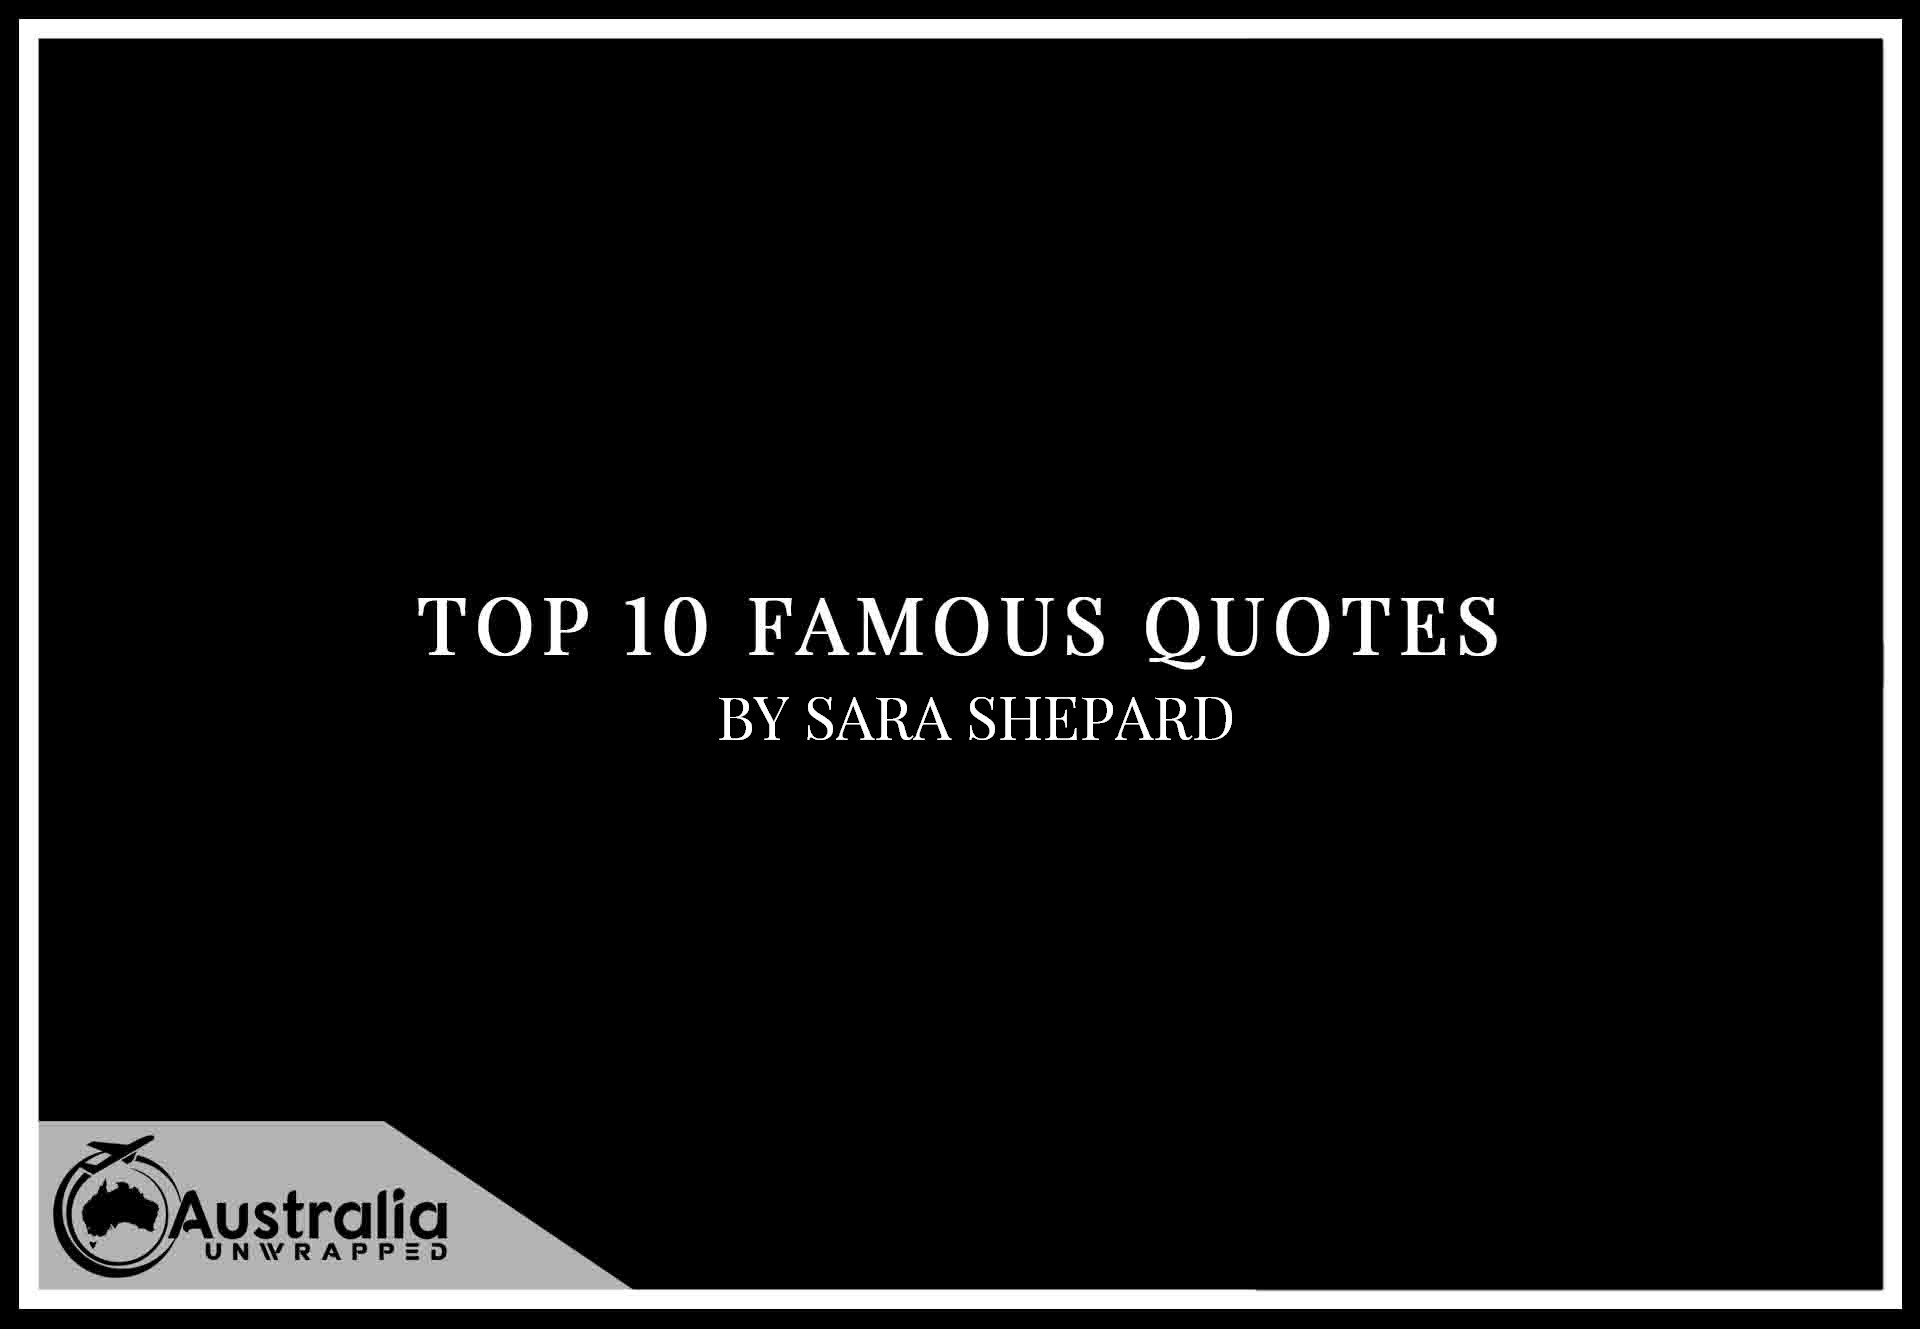 Top 10 Famous Quotes by Author Sara Shepard